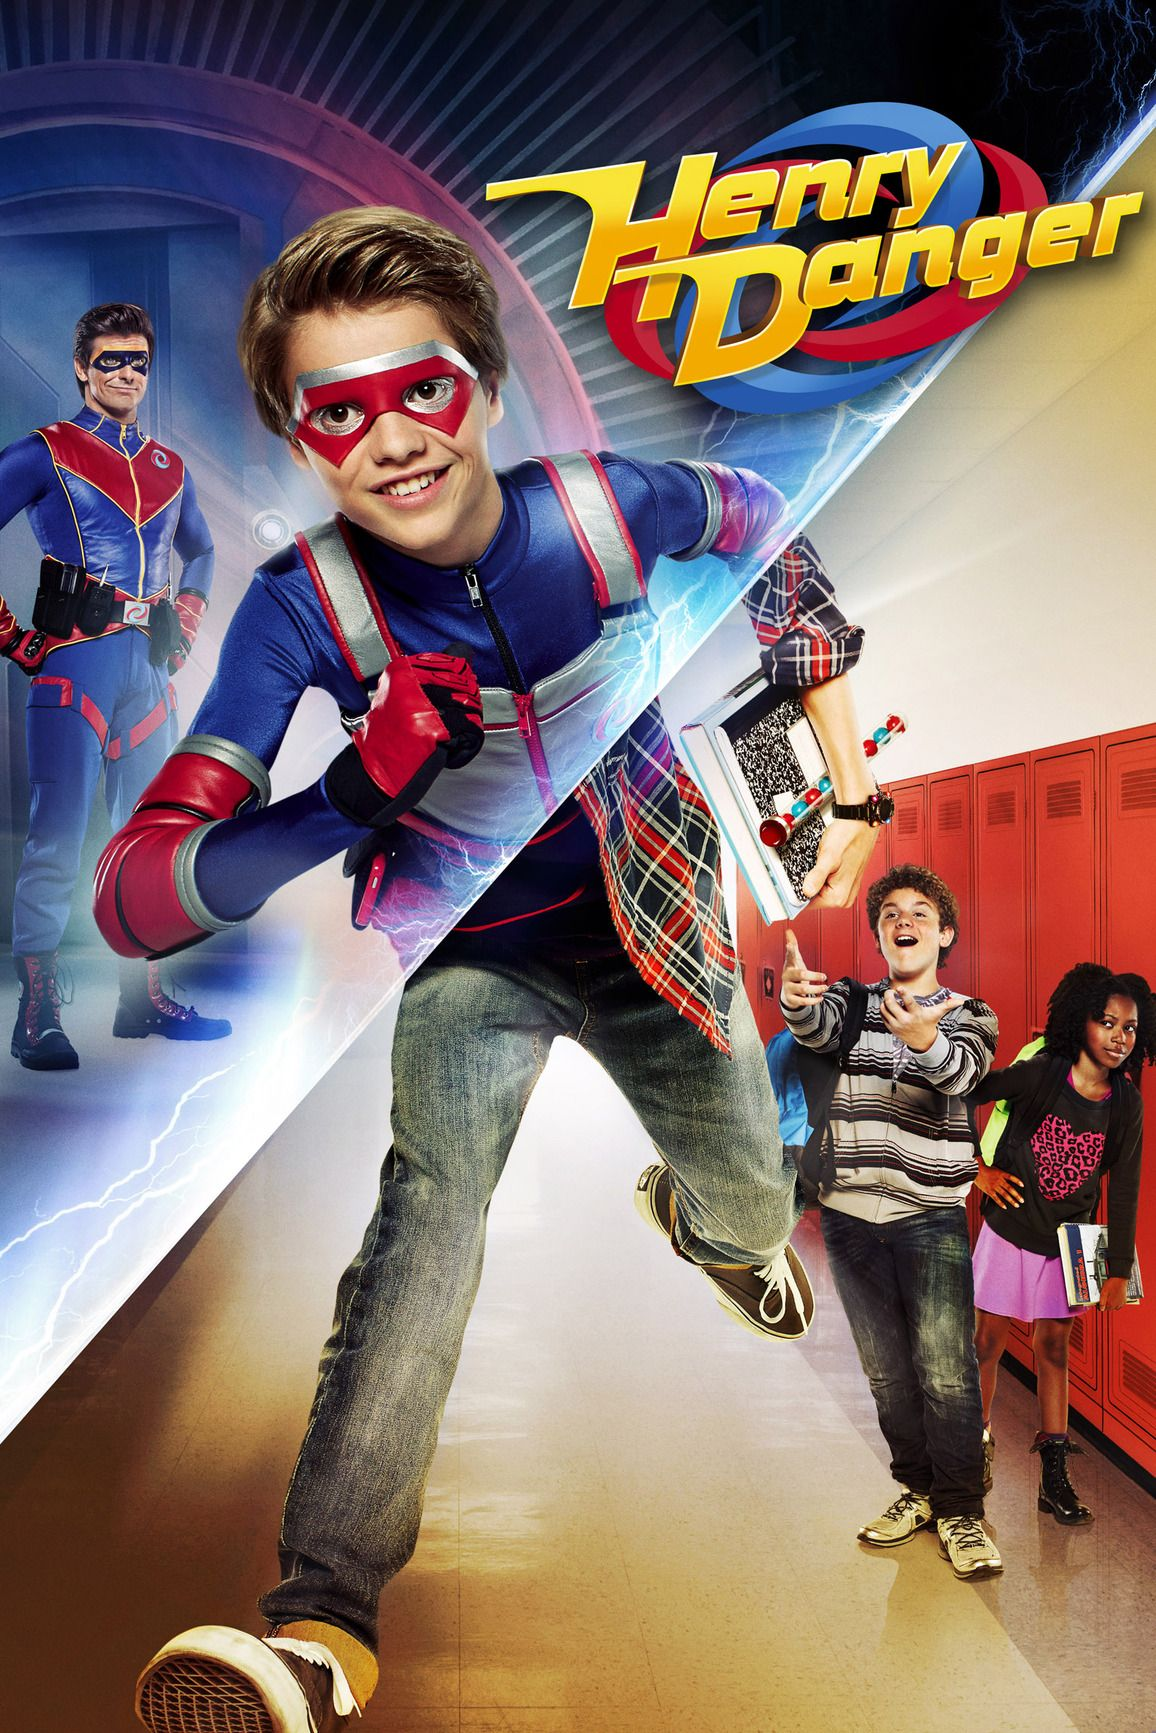 Henry Danger Is A American Situational Superhero Comedy Broadcast On The Nickelodeon Broadcasting Henry Danger Nickelodeon Henry Danger Jace Norman Nickelodeon